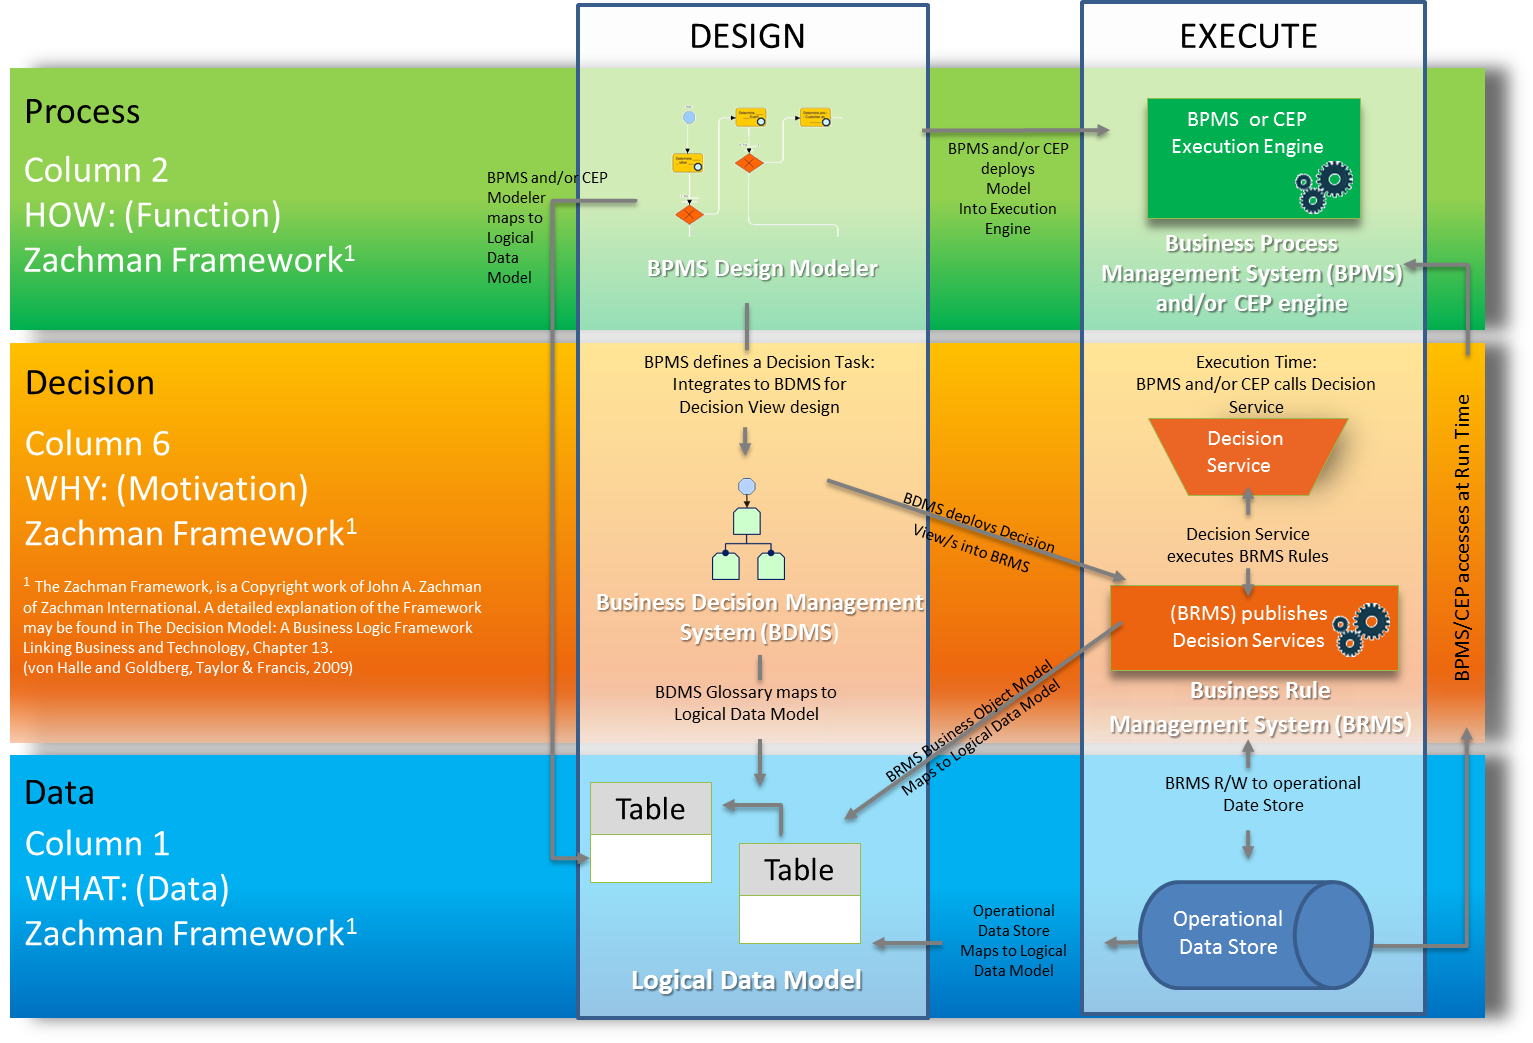 Figure 5 - Design and Execute Time Stacks for Decision Management Enabled Architecture